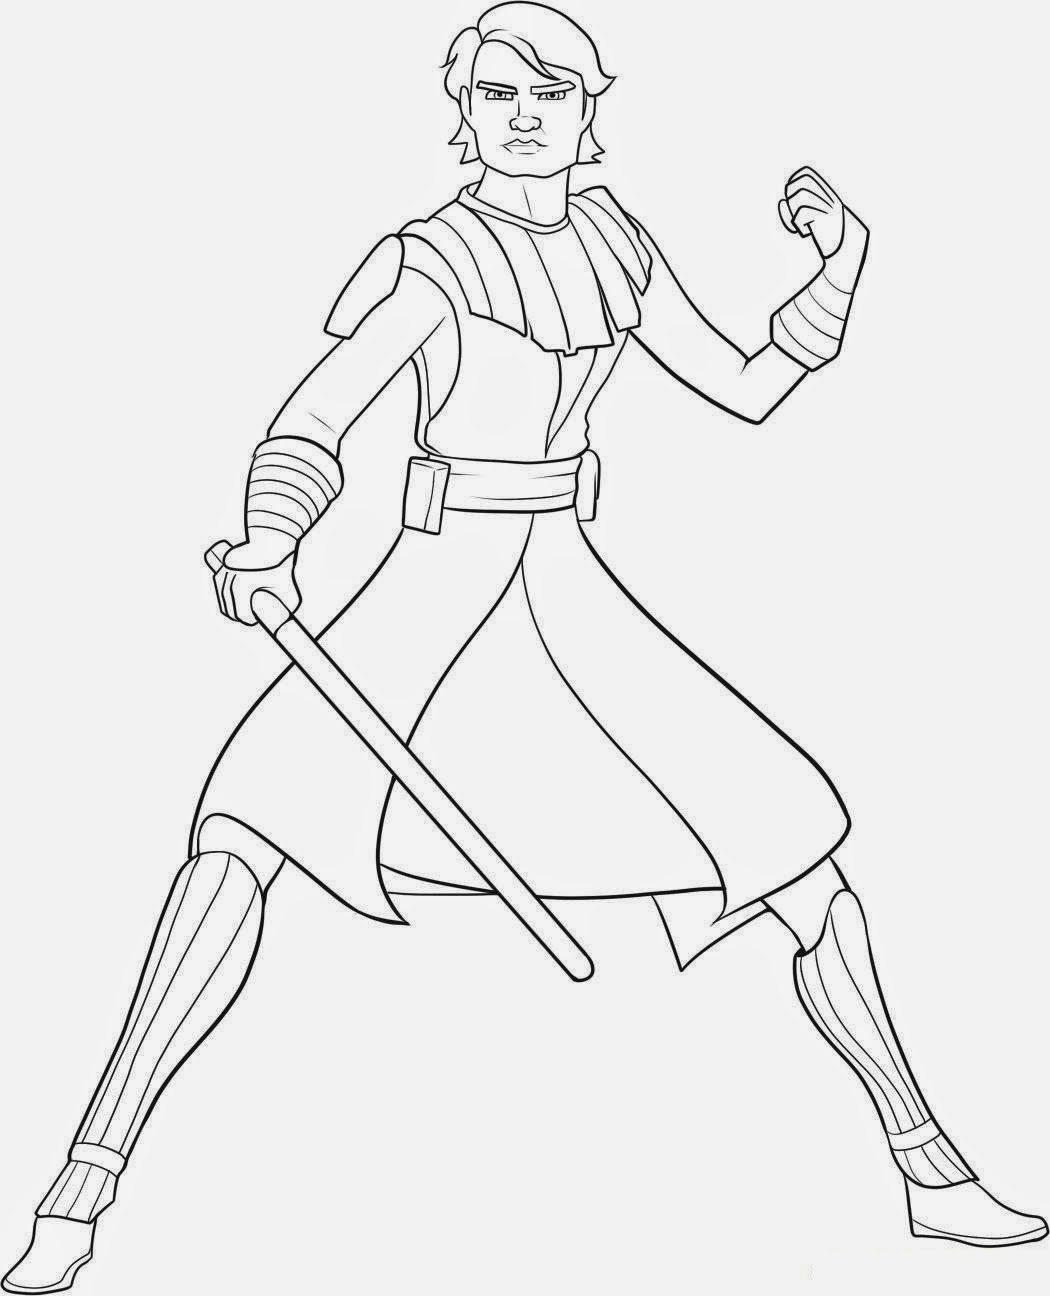 lego anakin skywalker coloring pages - photo#3